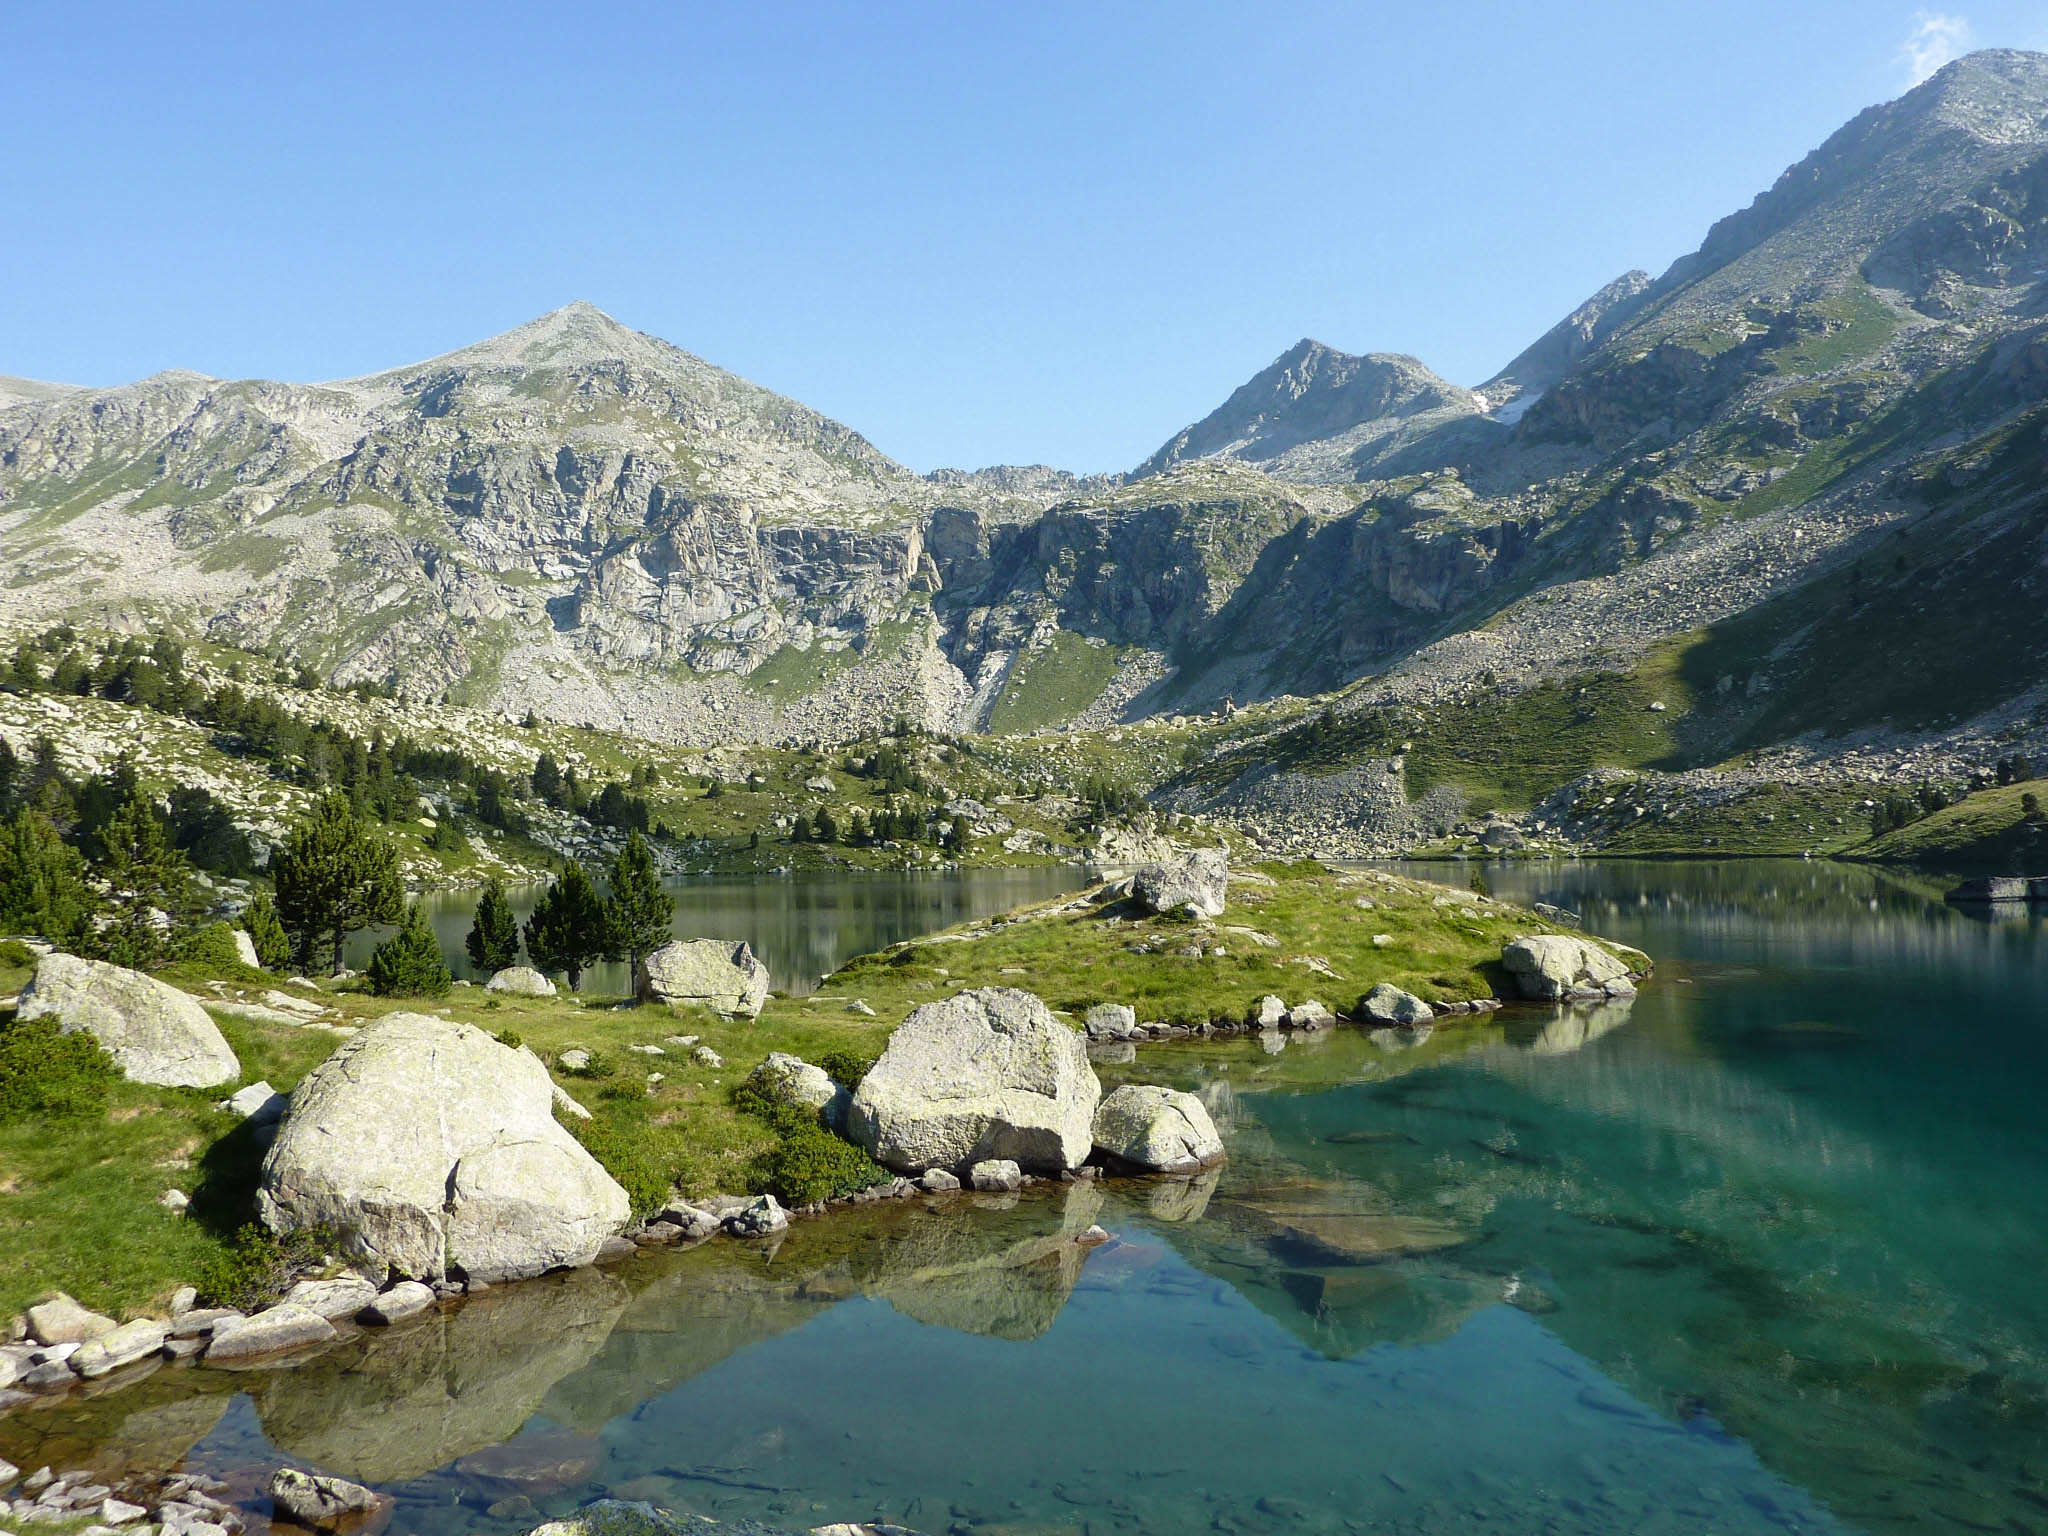 Hiking Gémena lakes: Full route